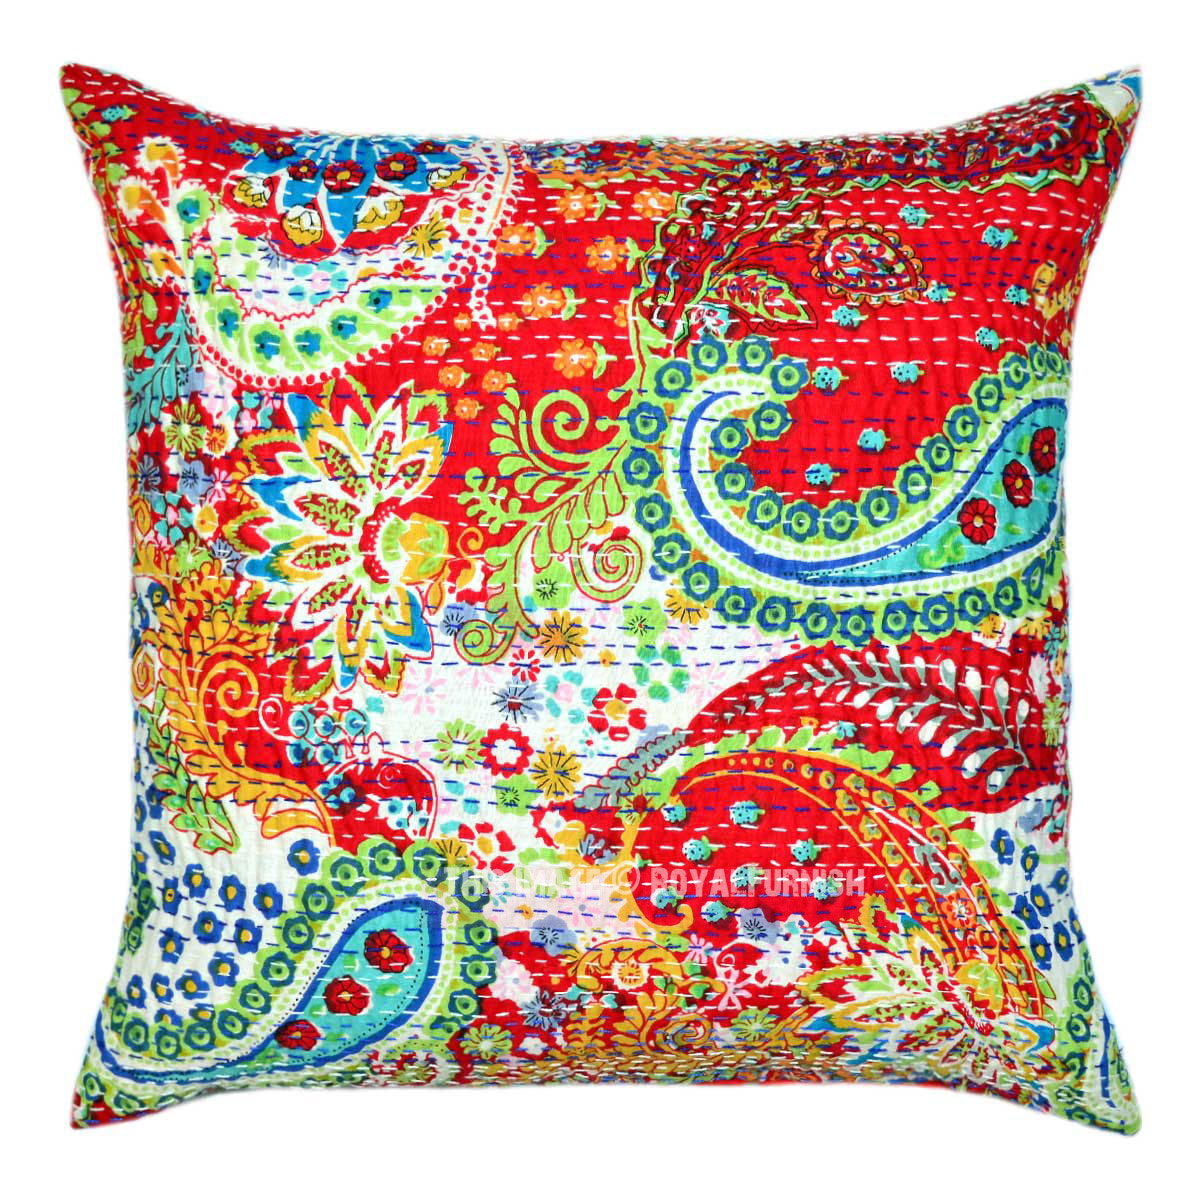 Decorative Pillow Cover Mcqueen Red Multi : 20X20 Red Multi Paisley Kantha Throw Pillow Case - RoyalFurnish.com